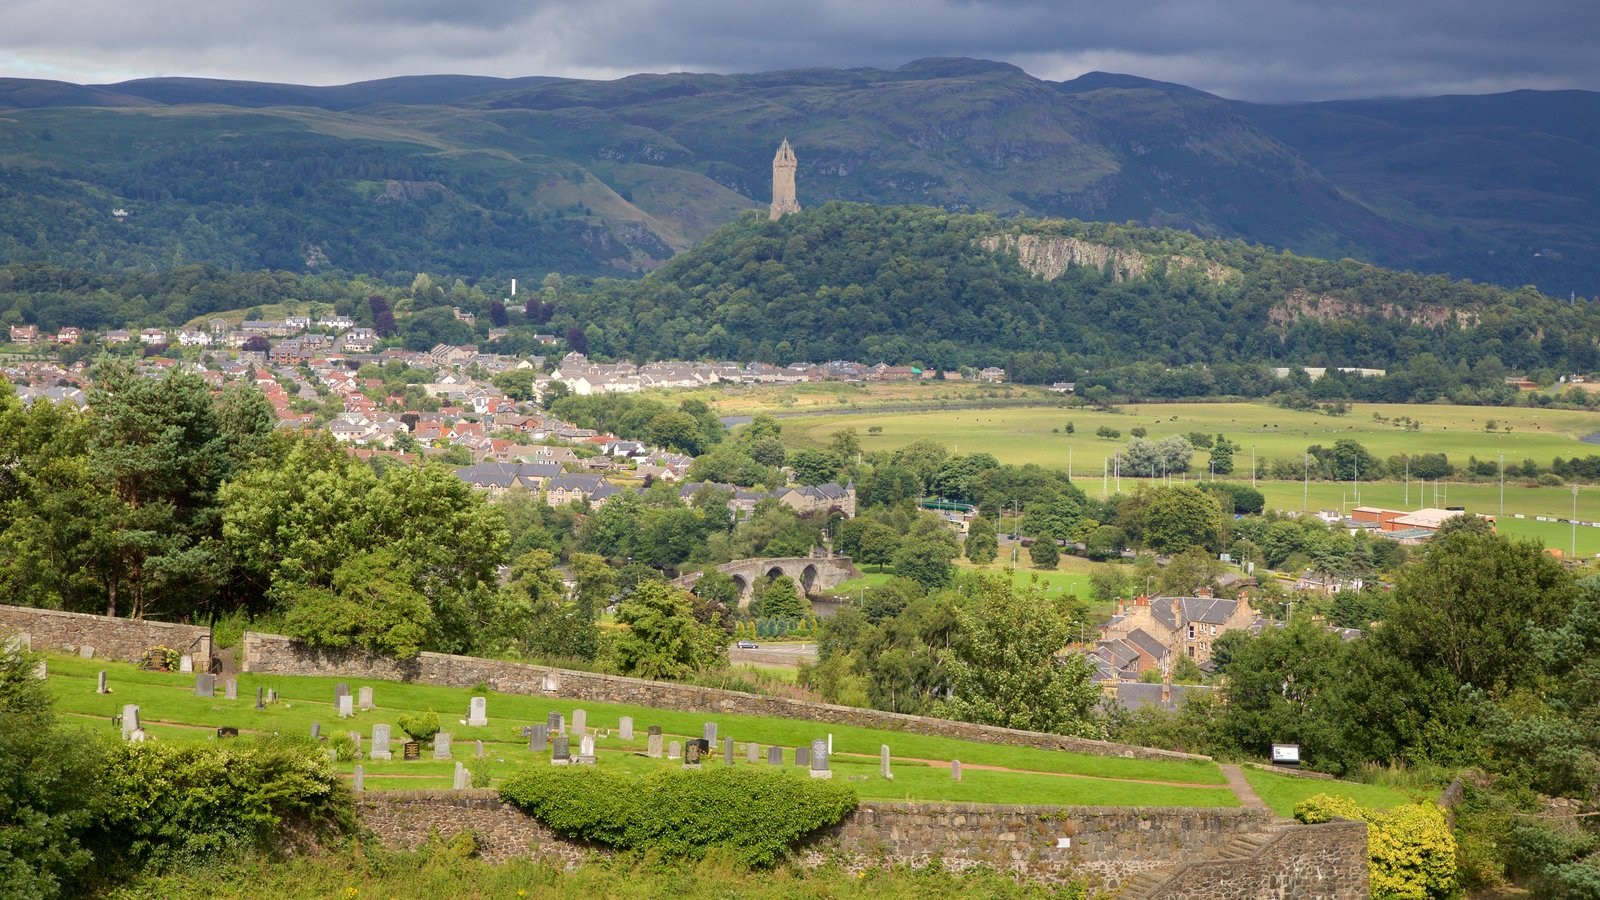 National Wallace Monument which includes a small town or village and landscape views